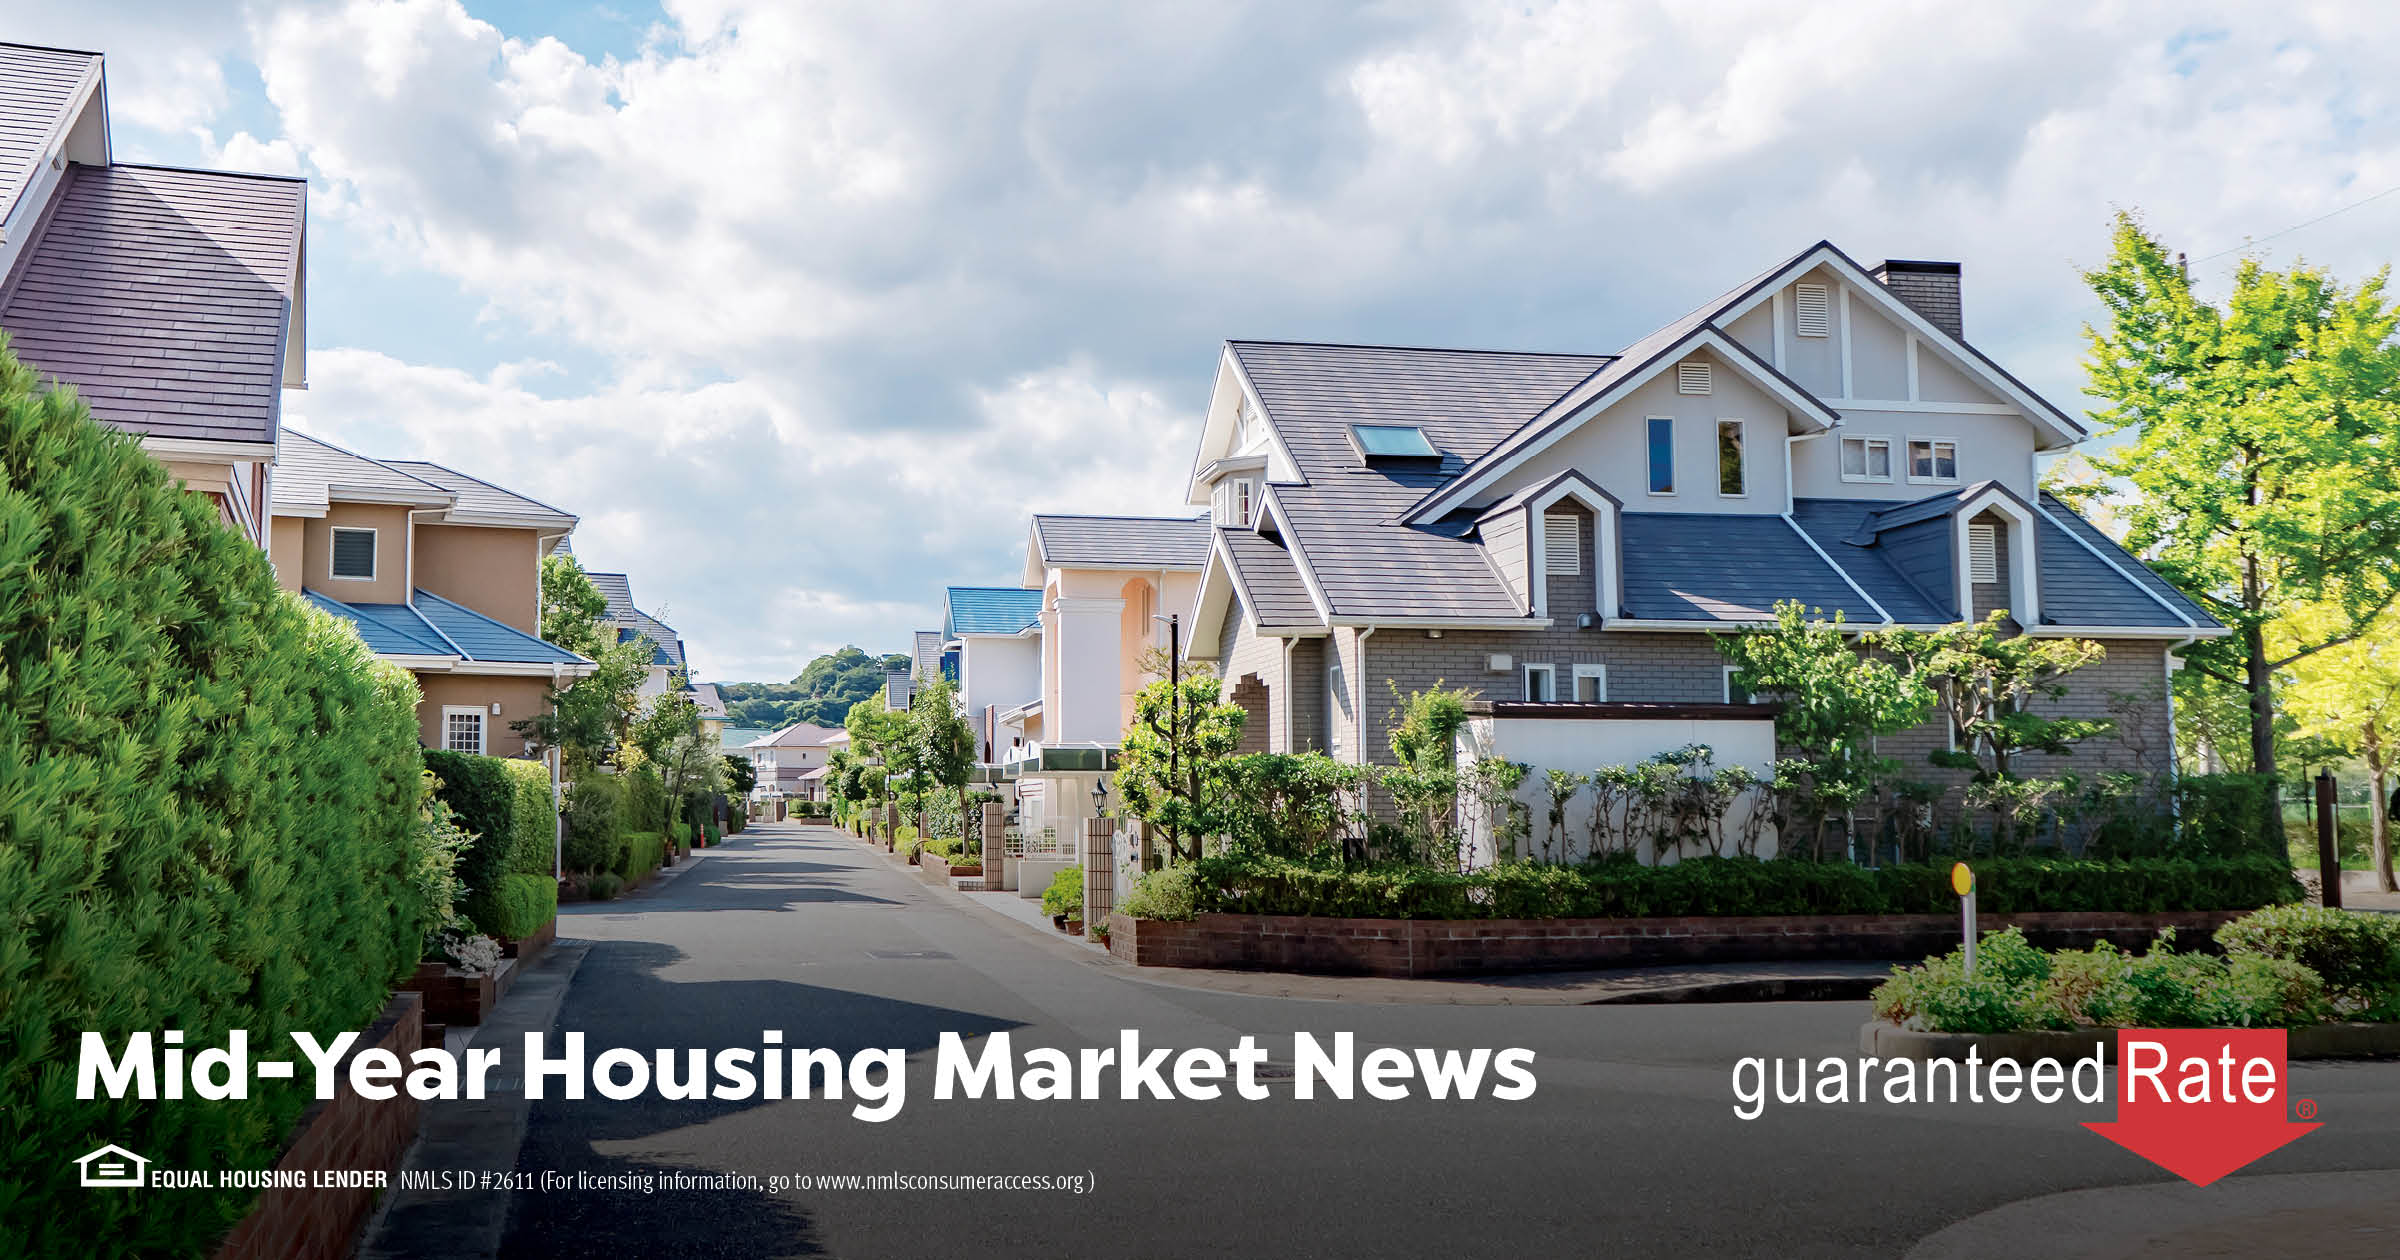 Mid-Year Housing Market News: Hot homes, hotter rates